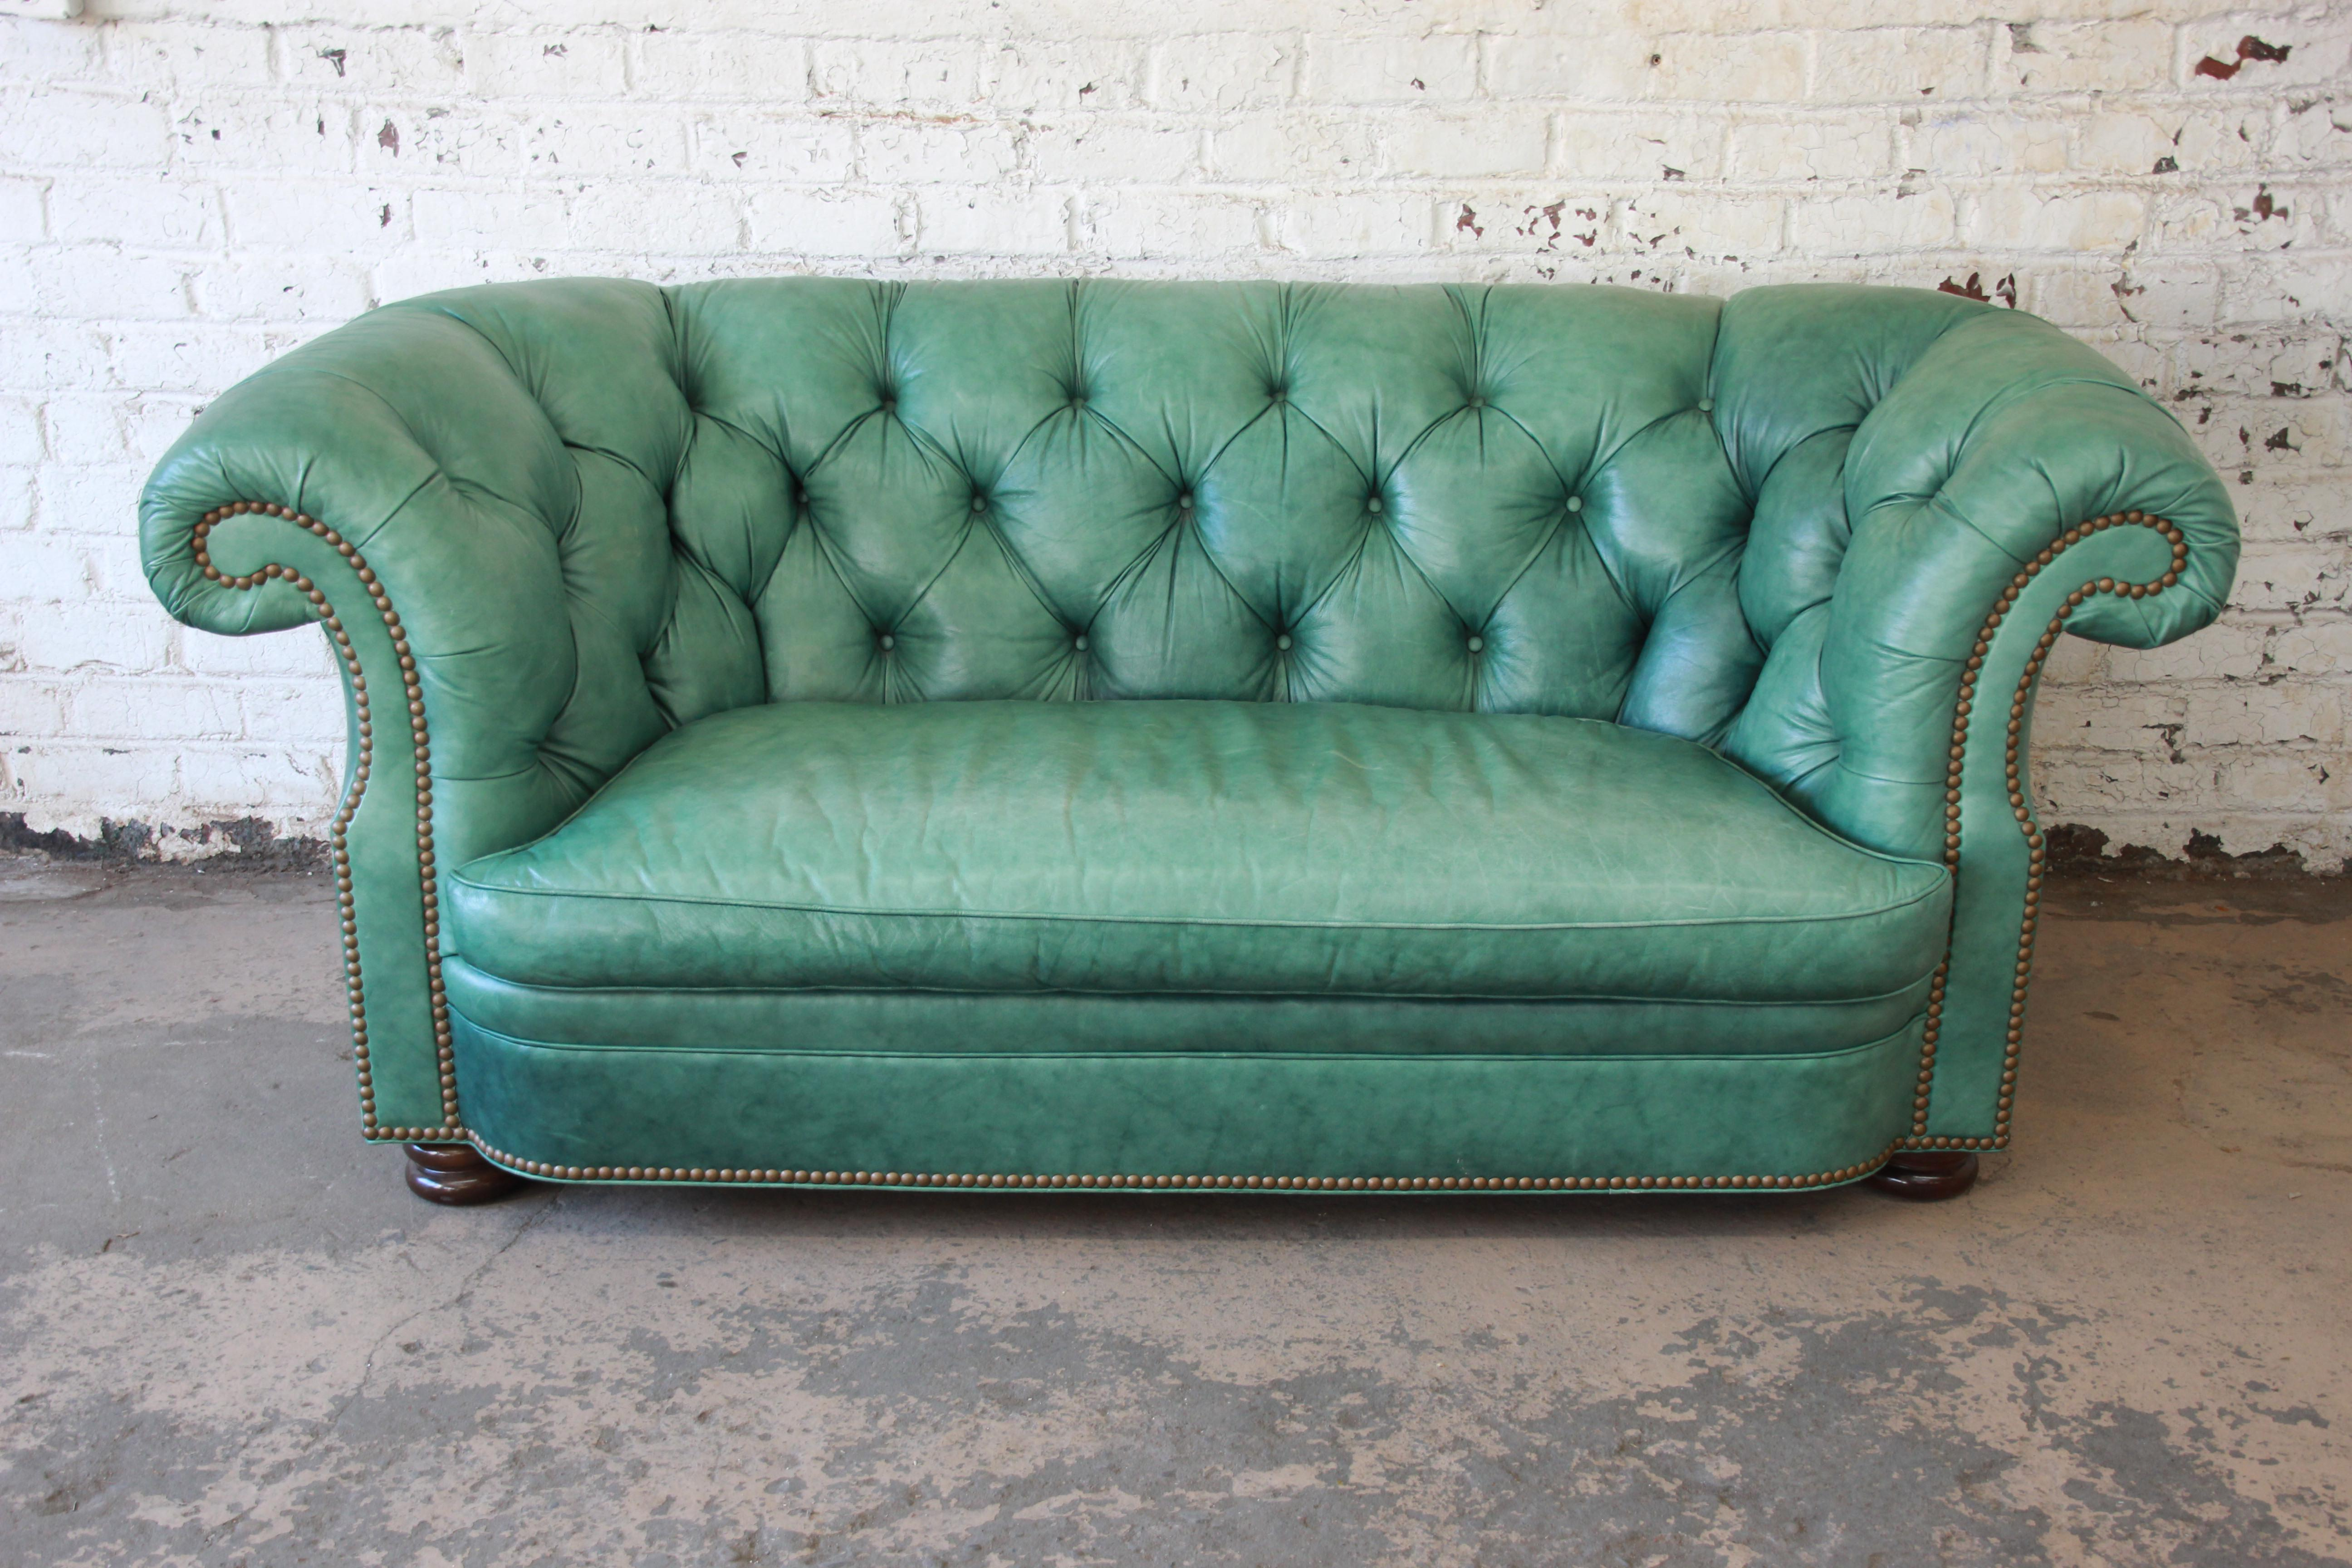 Offering An Outstanding Vintage Tufted Leather Chesterfield Style Sofa By  Hancock U0026 Moore. The Sofa